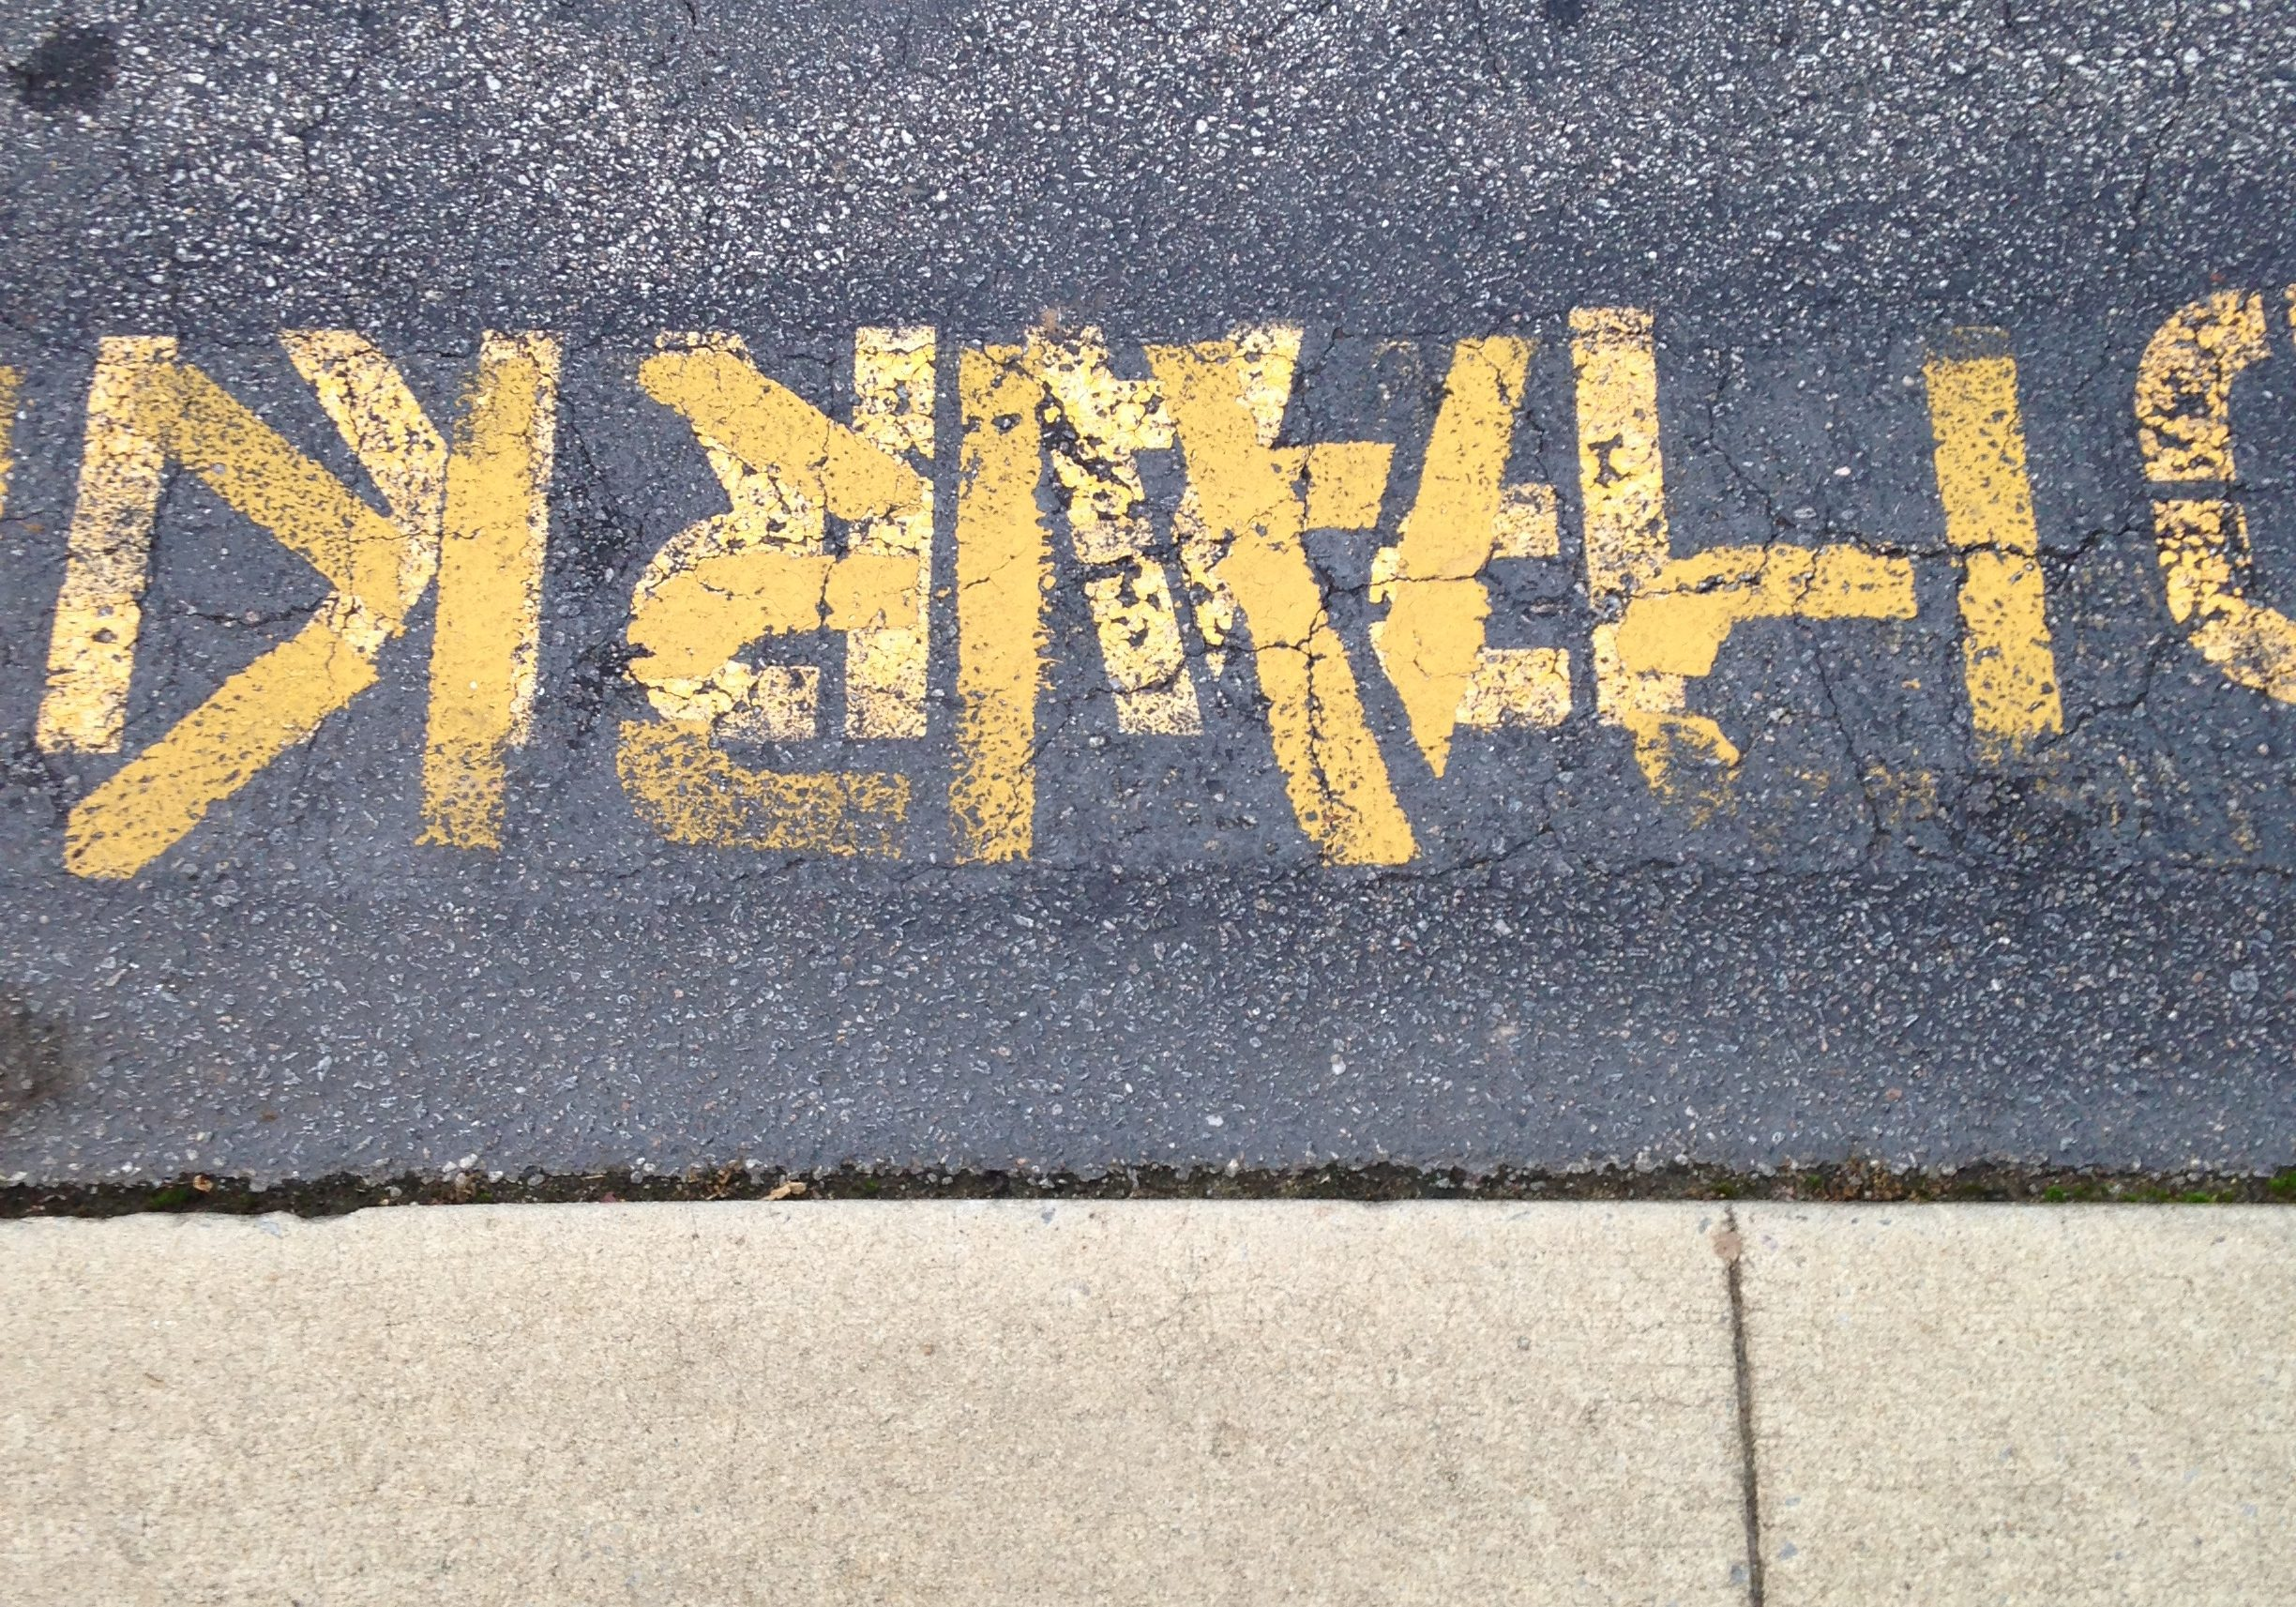 stencils letters on pavement that cant be read